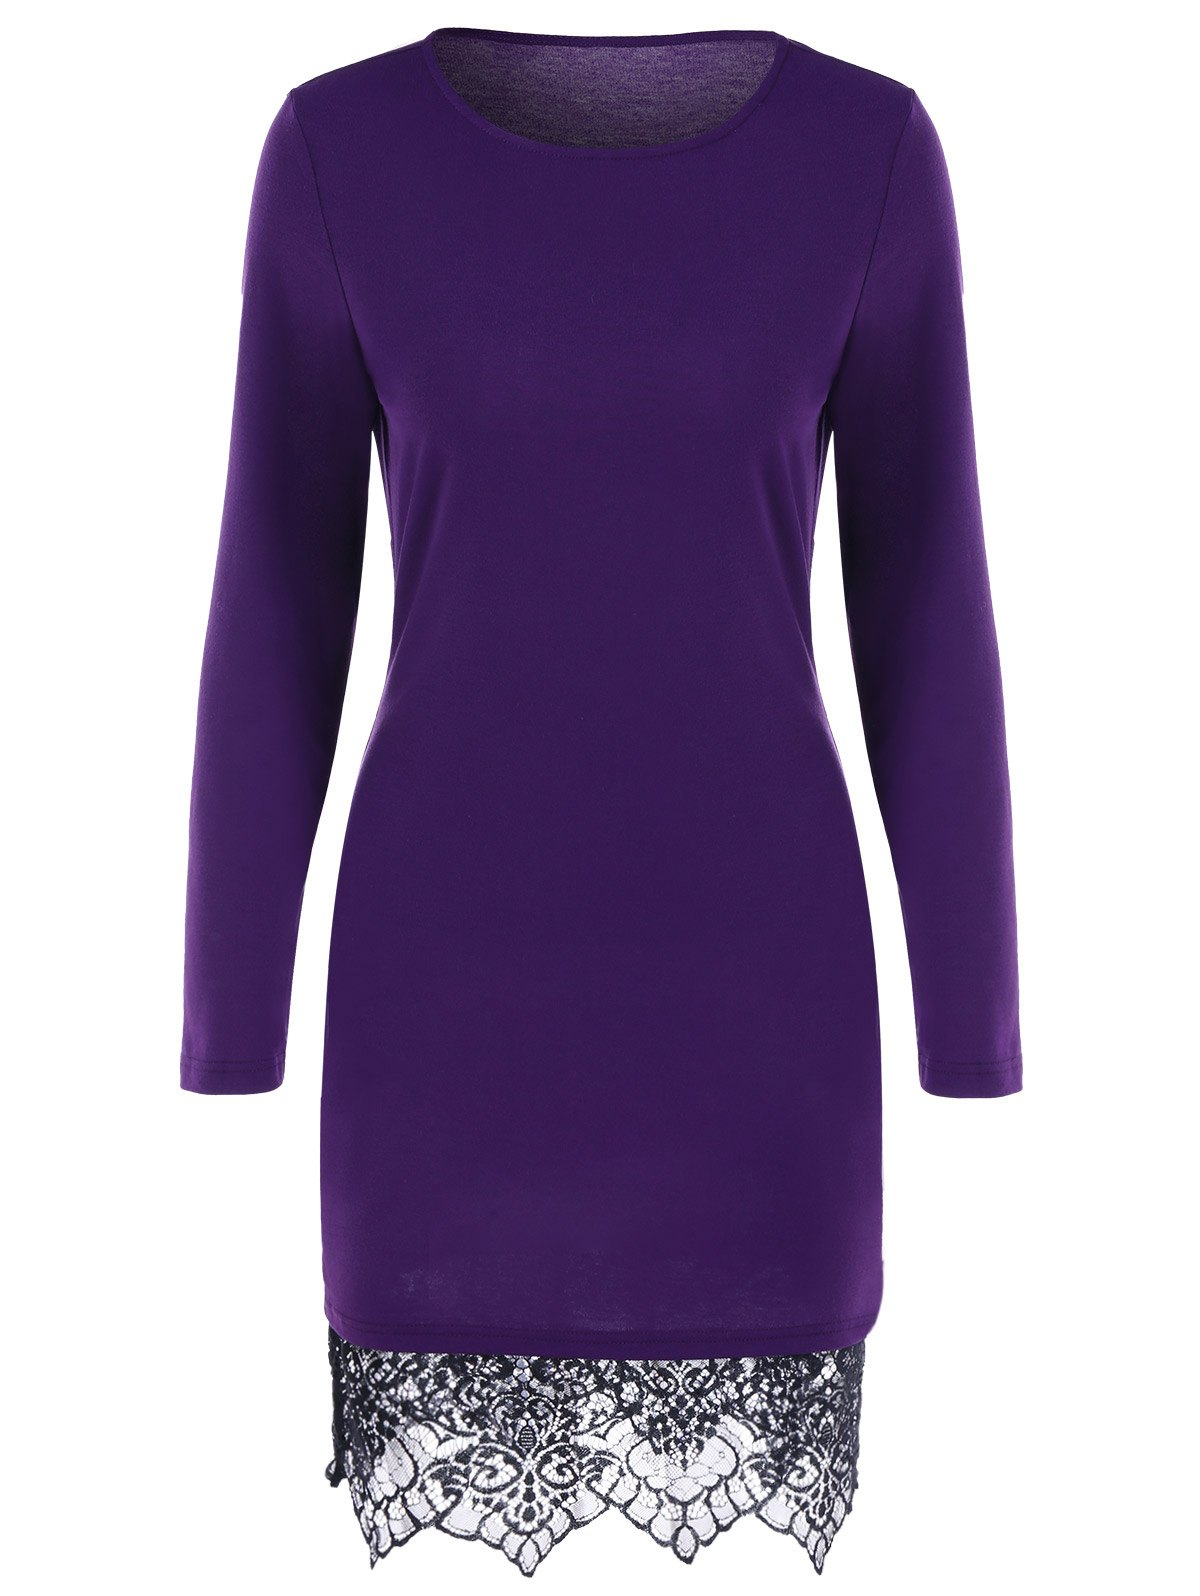 Lace Trim Long Sleeve Fitted DressWomen<br><br><br>Size: M<br>Color: BLACK AND PURPLE